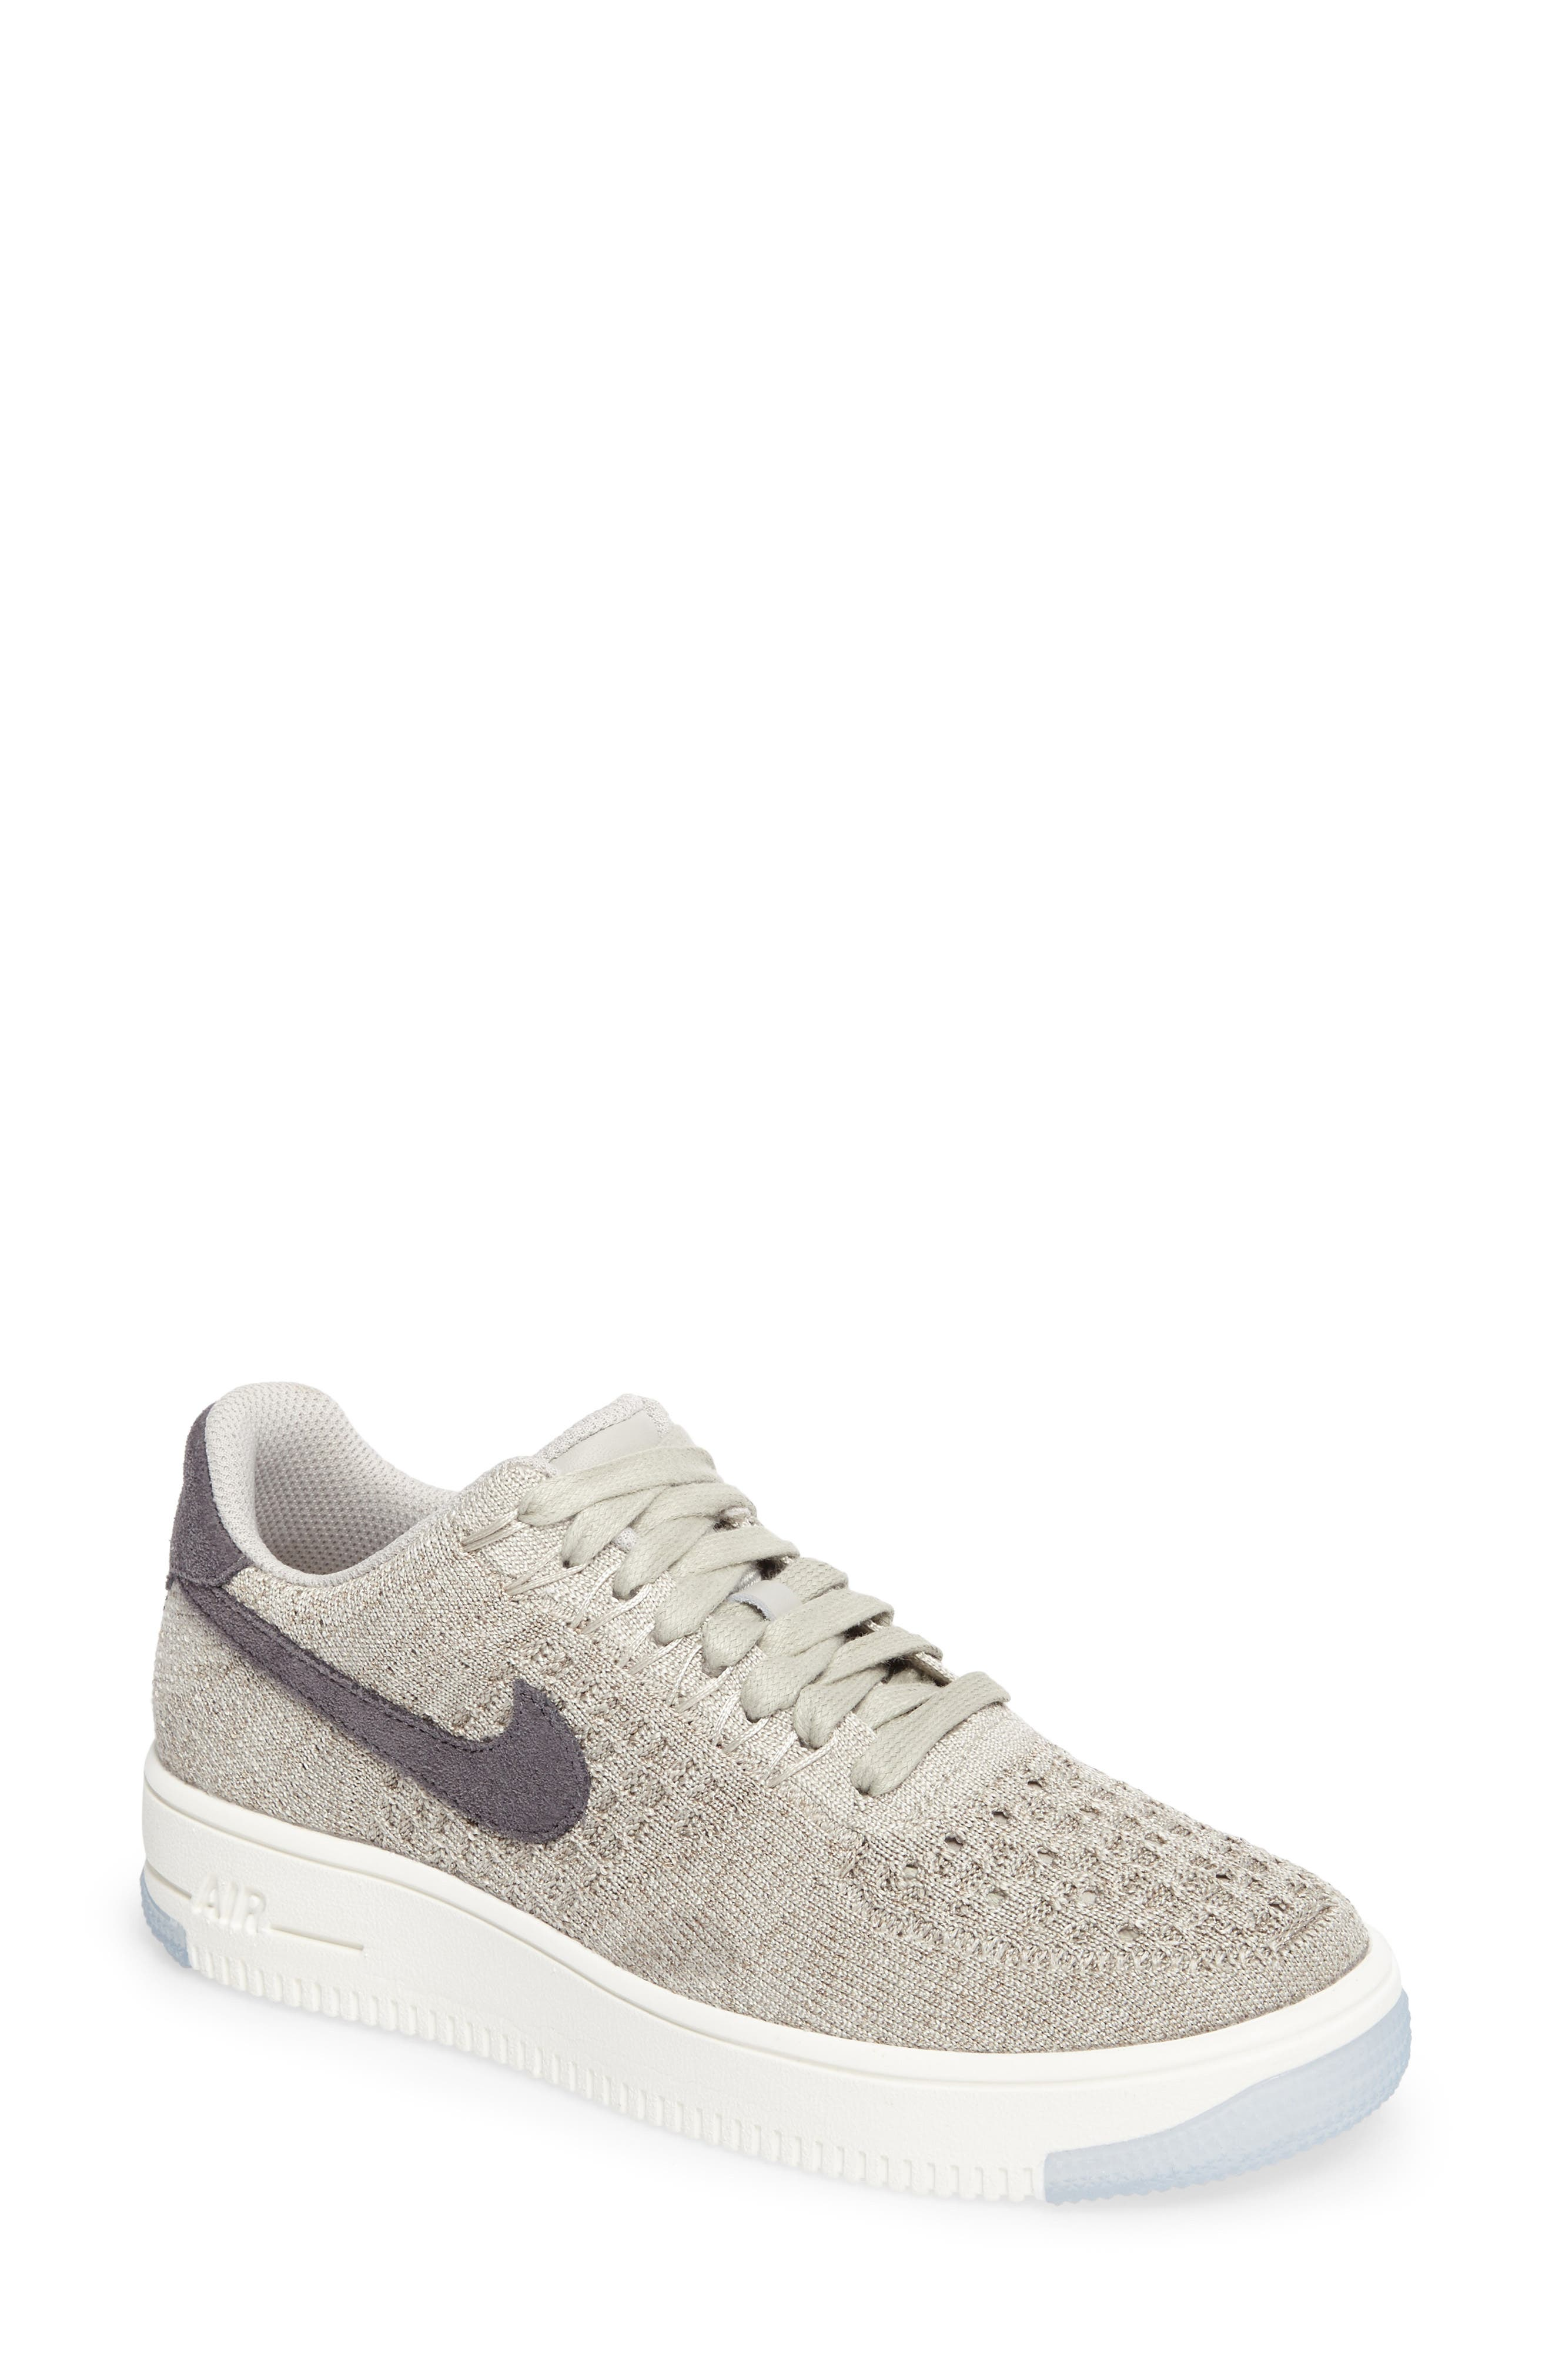 'Air Force 1 Flyknit Low' Sneaker,                             Main thumbnail 3, color,